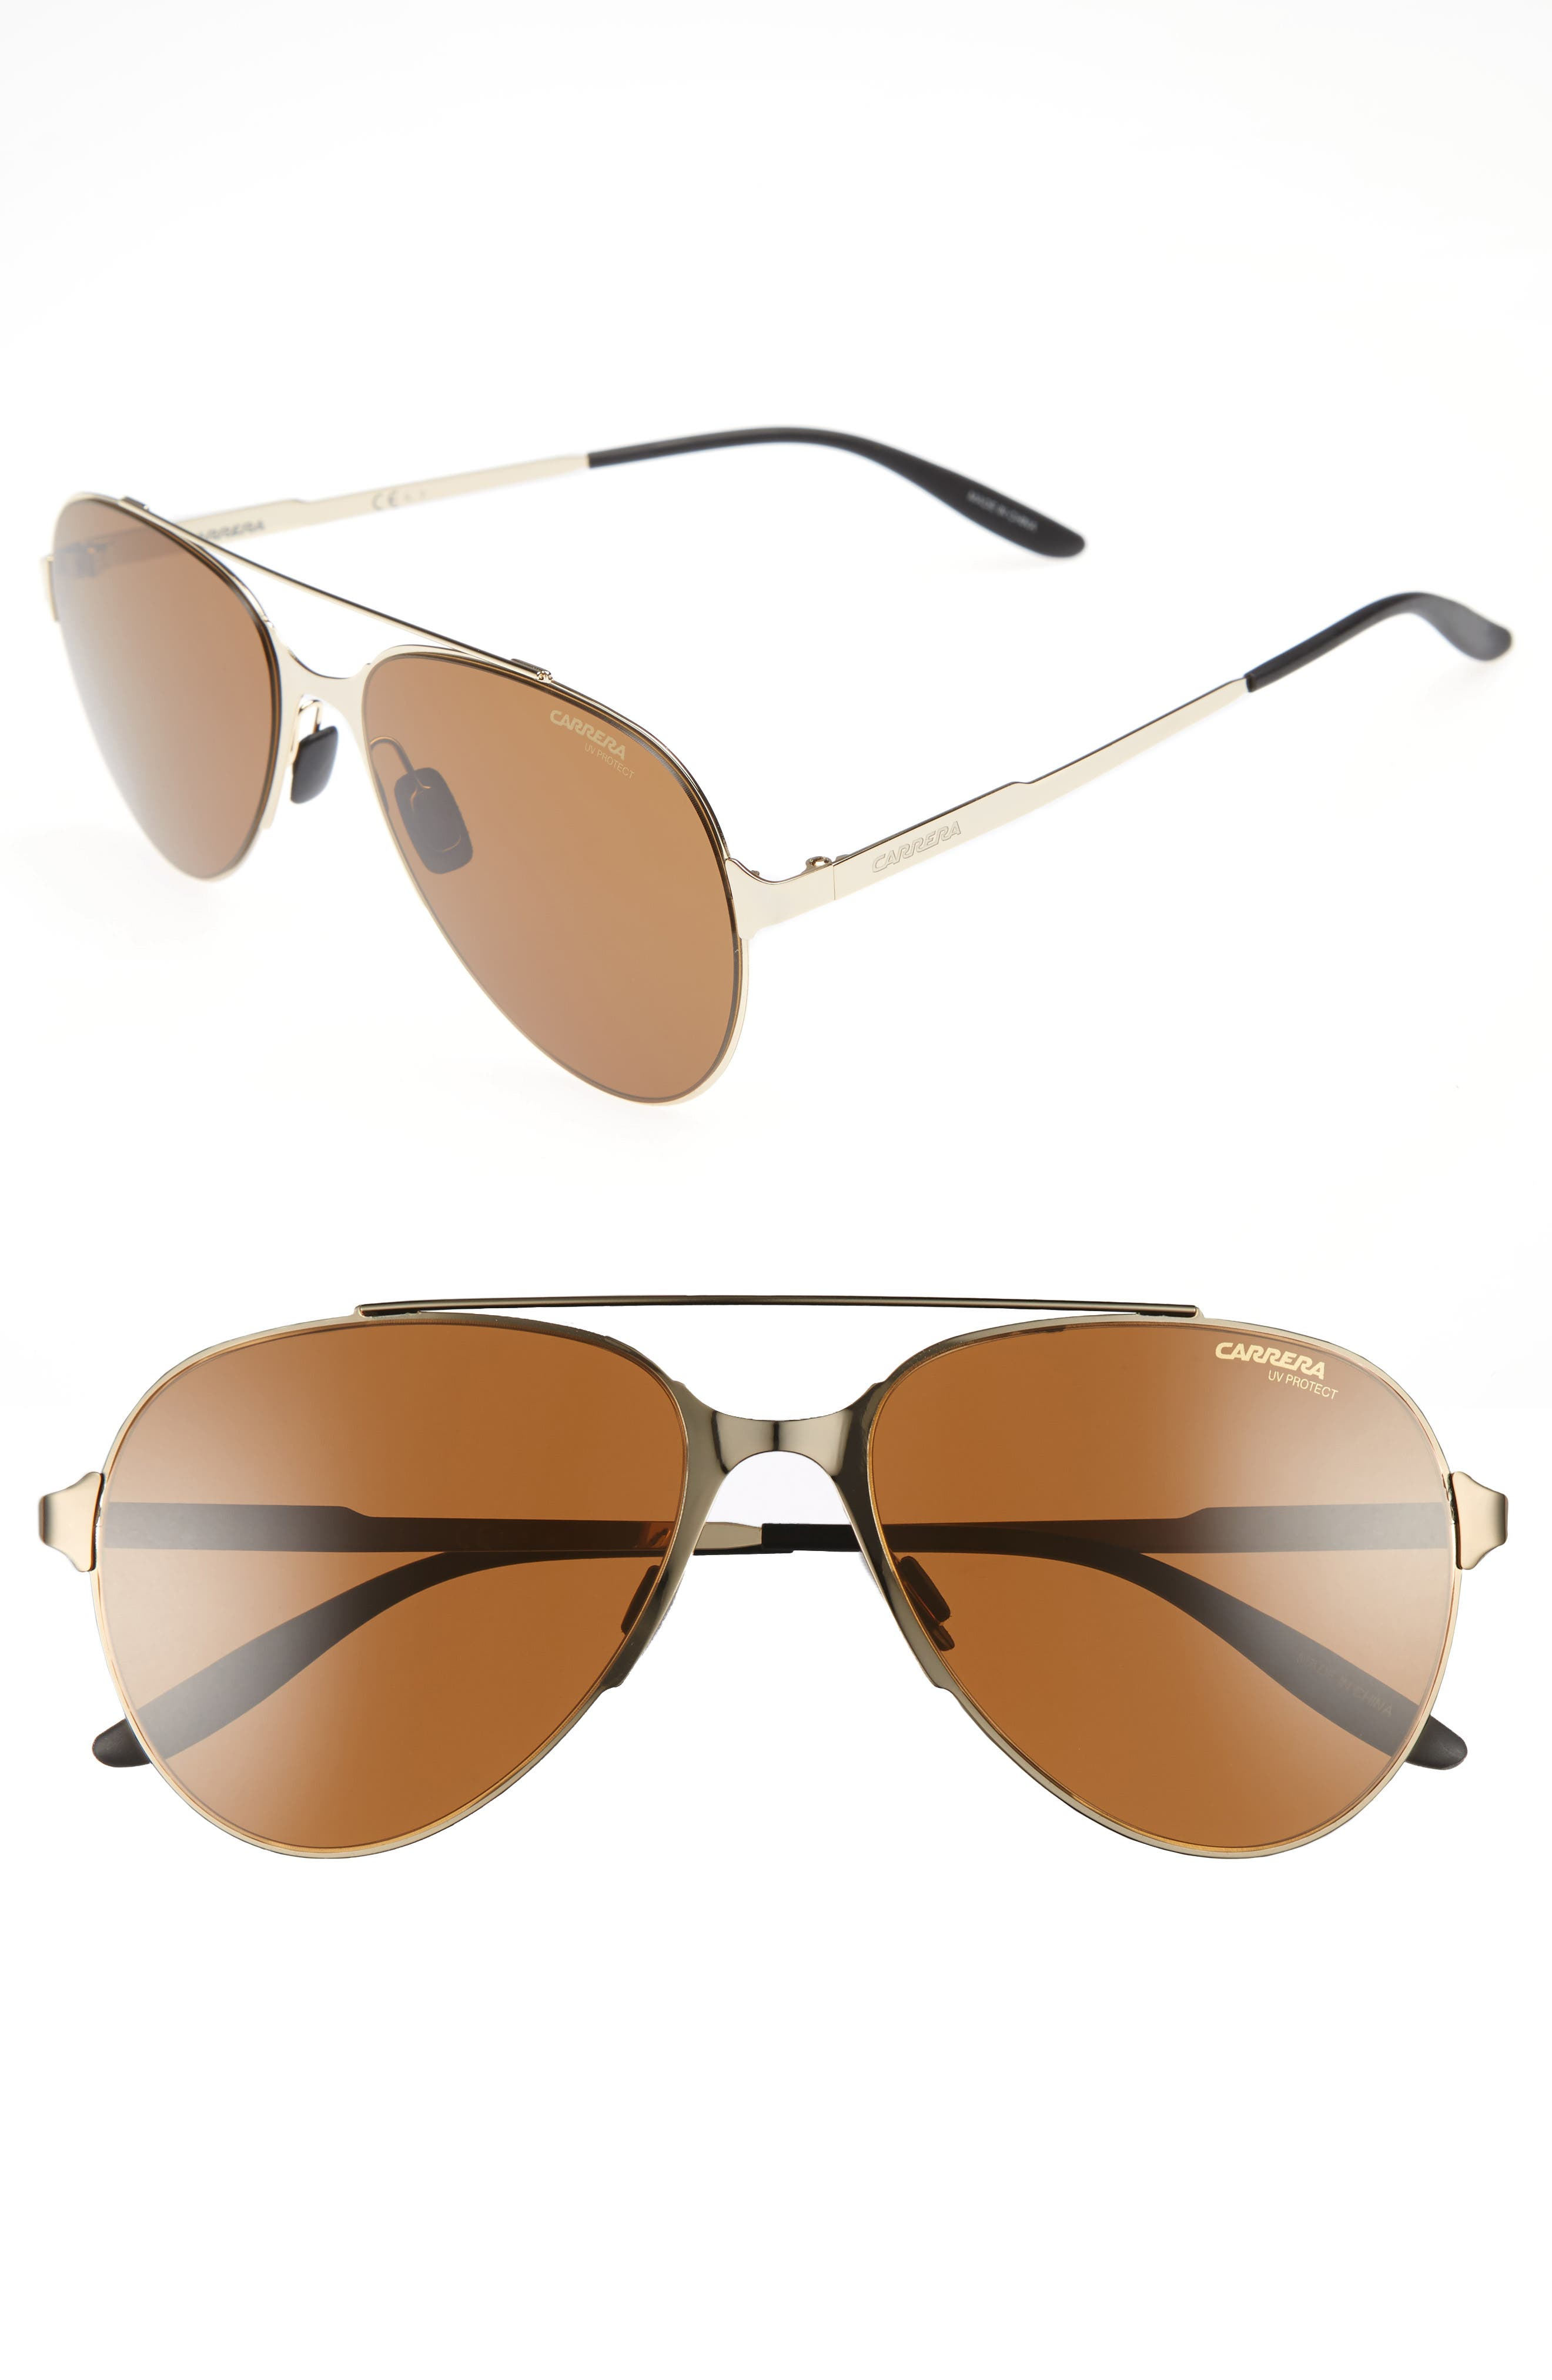 55mm Aviator Sunglasses,                             Main thumbnail 1, color,                             714